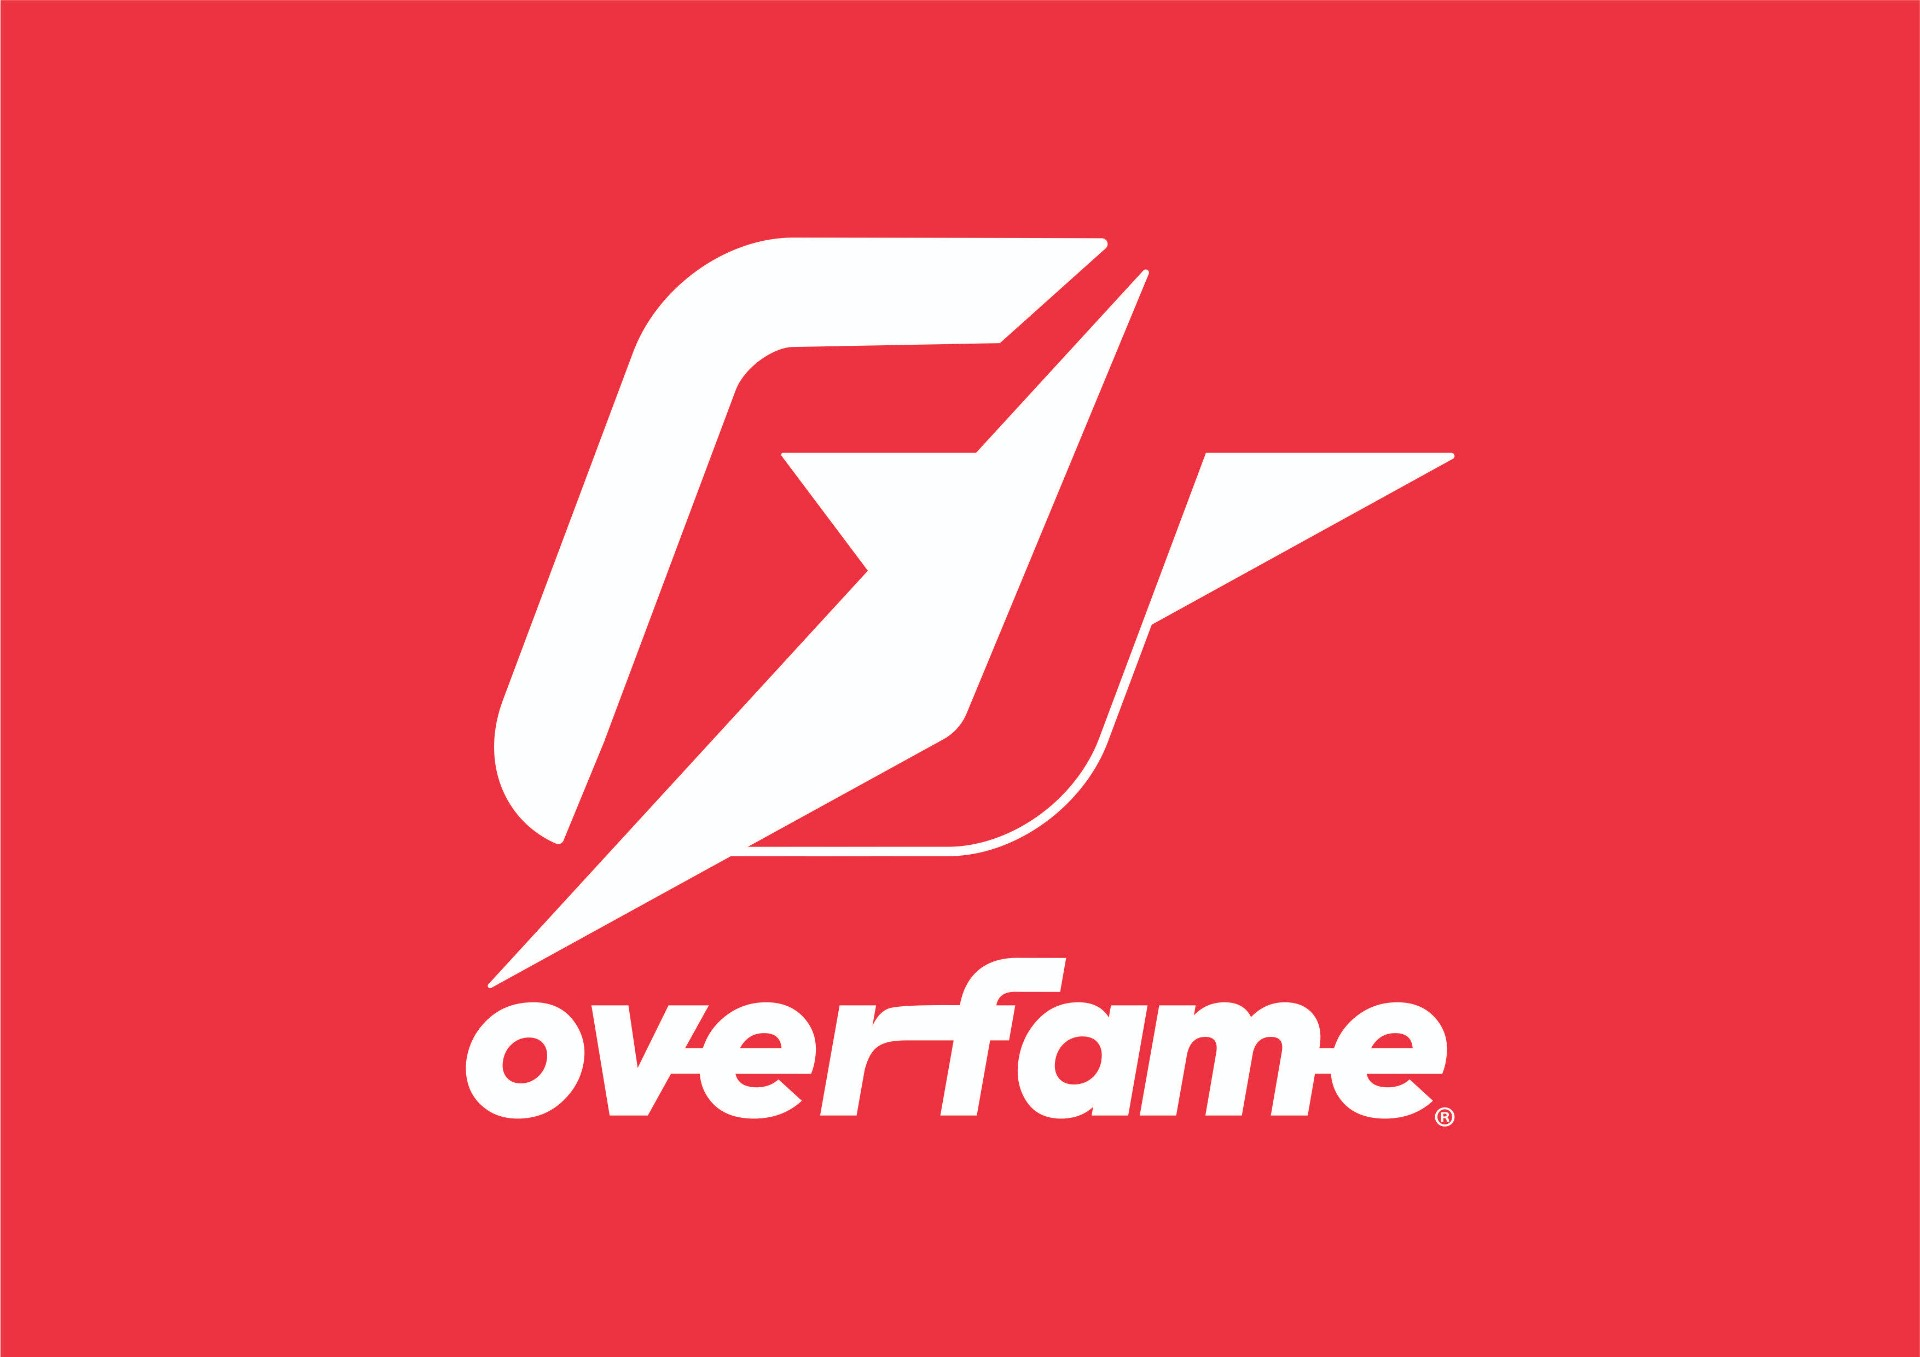 OVER FAME